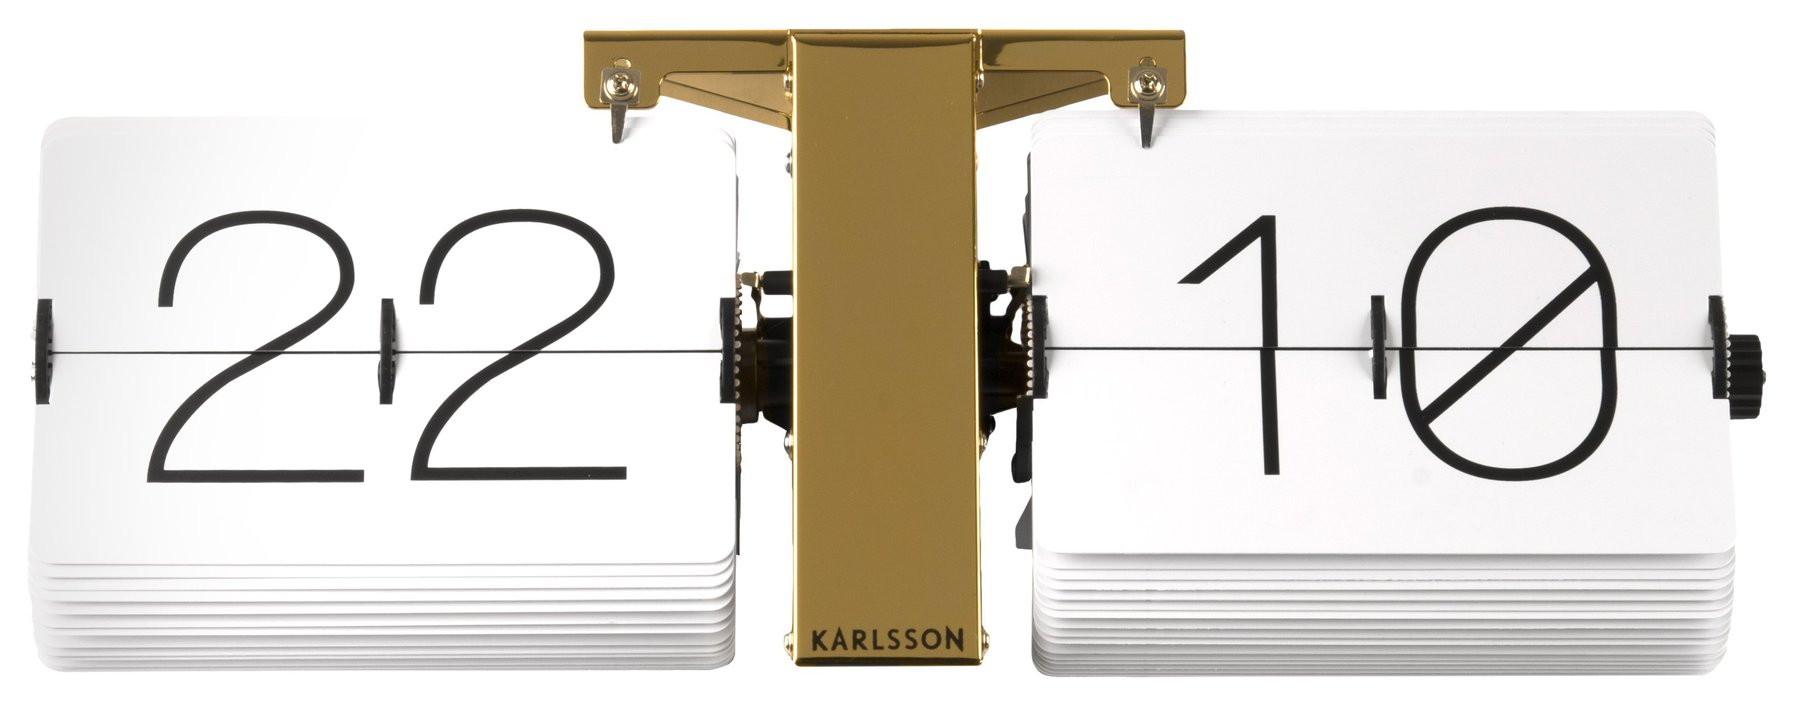 Karlsson Flip Clock No Case